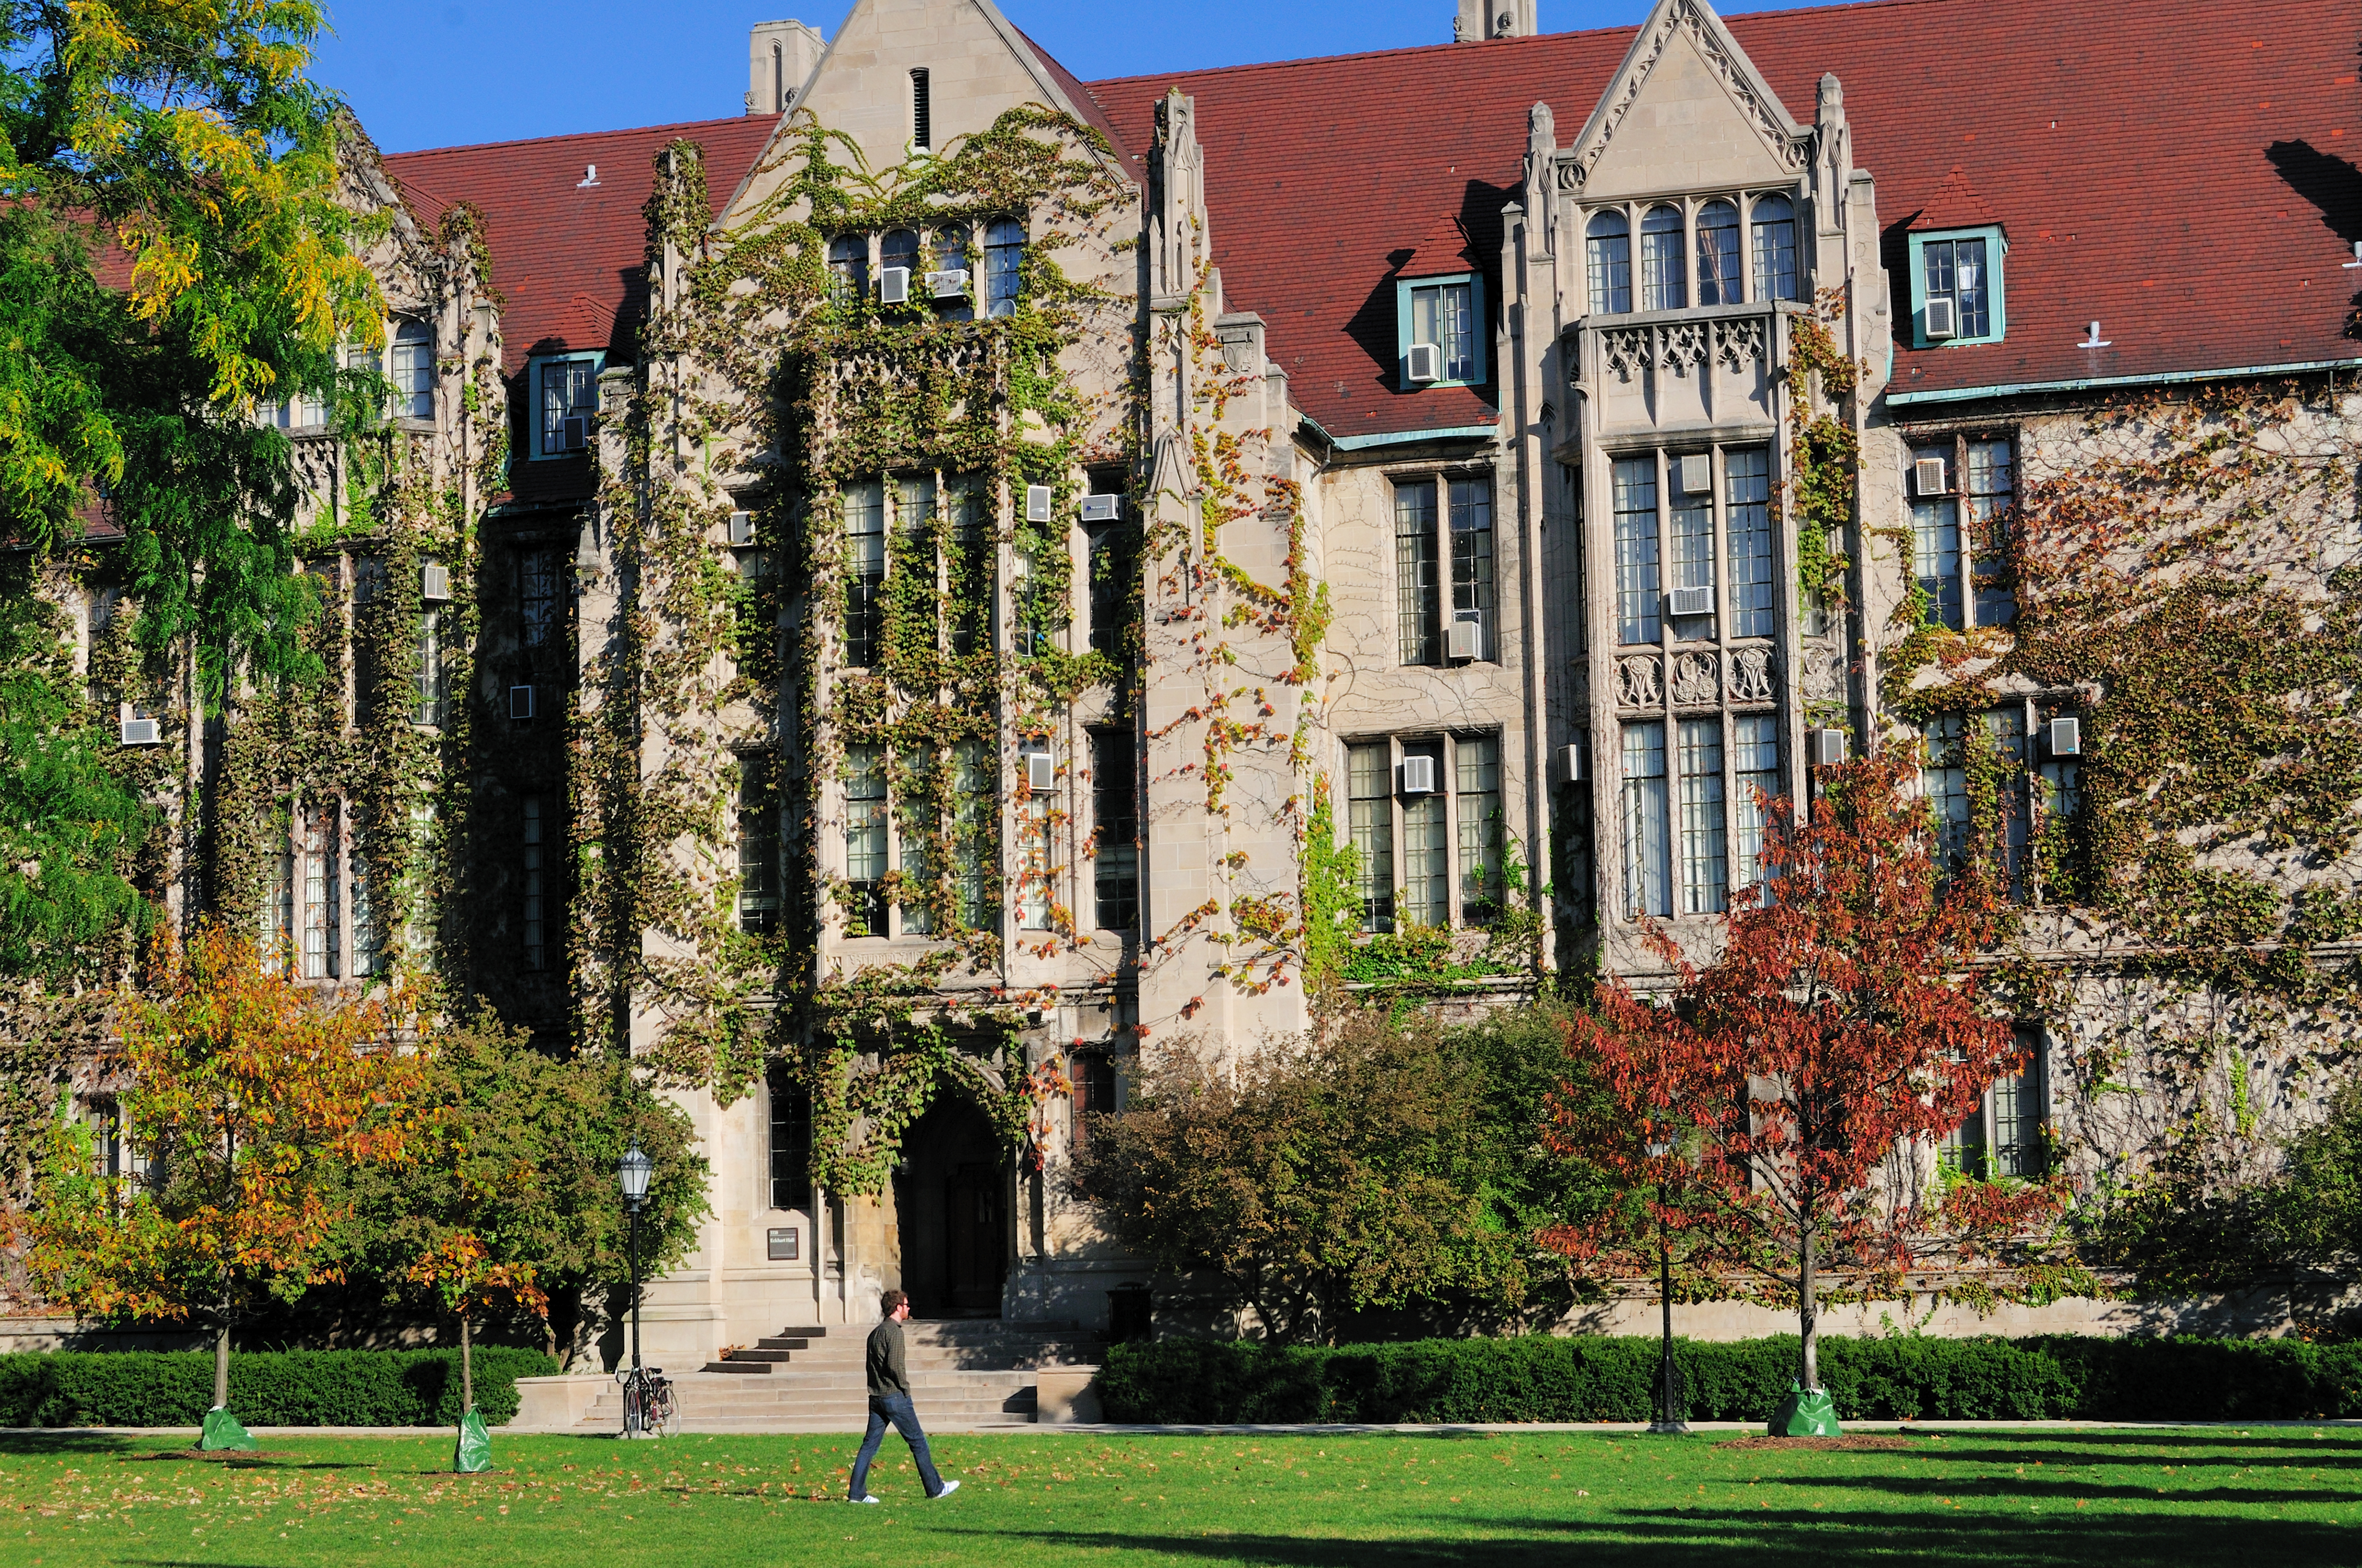 A student cust across the quadrangle in front of Eckhart Hall on the campus of the University of Chicago. Chicago, Illinois.